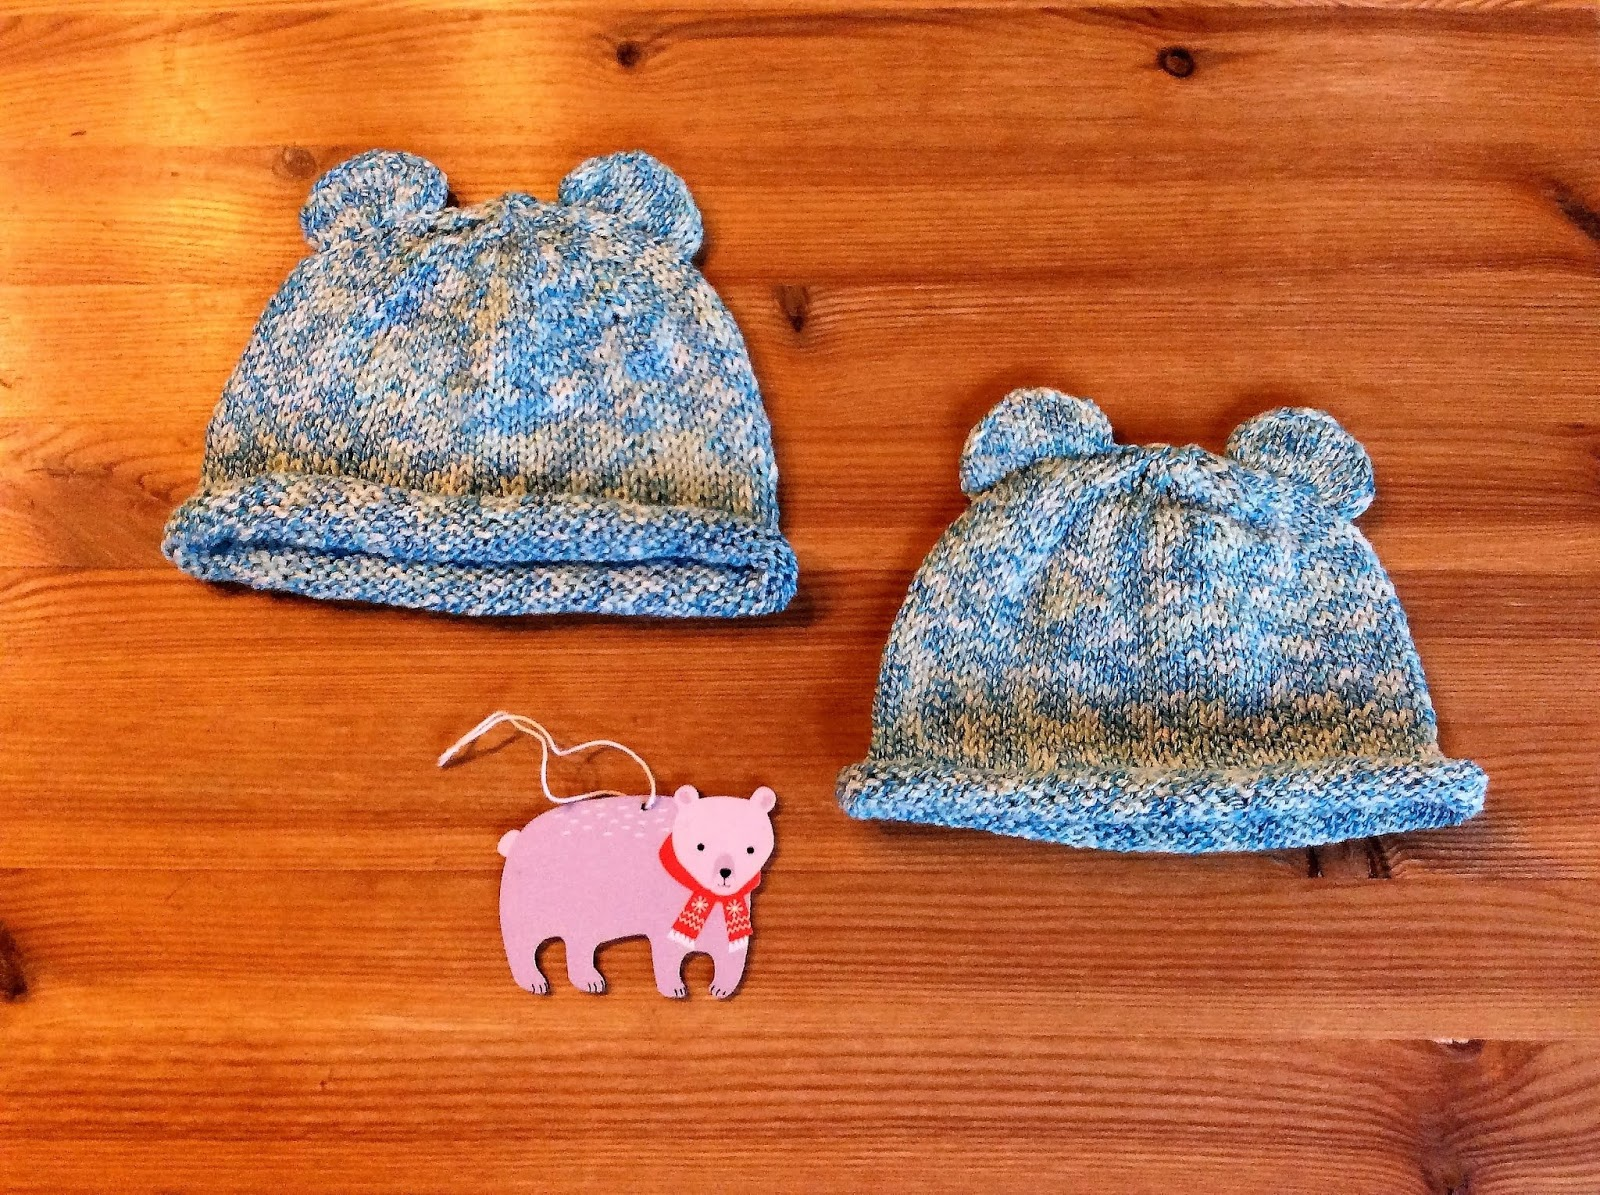 82f92003686 Itty bitty bear cubs. What an adorable pattern! You can find it (it s free!)  here on ravelry. I very much enjoyed knitting these baby hats for 2  friends  ...